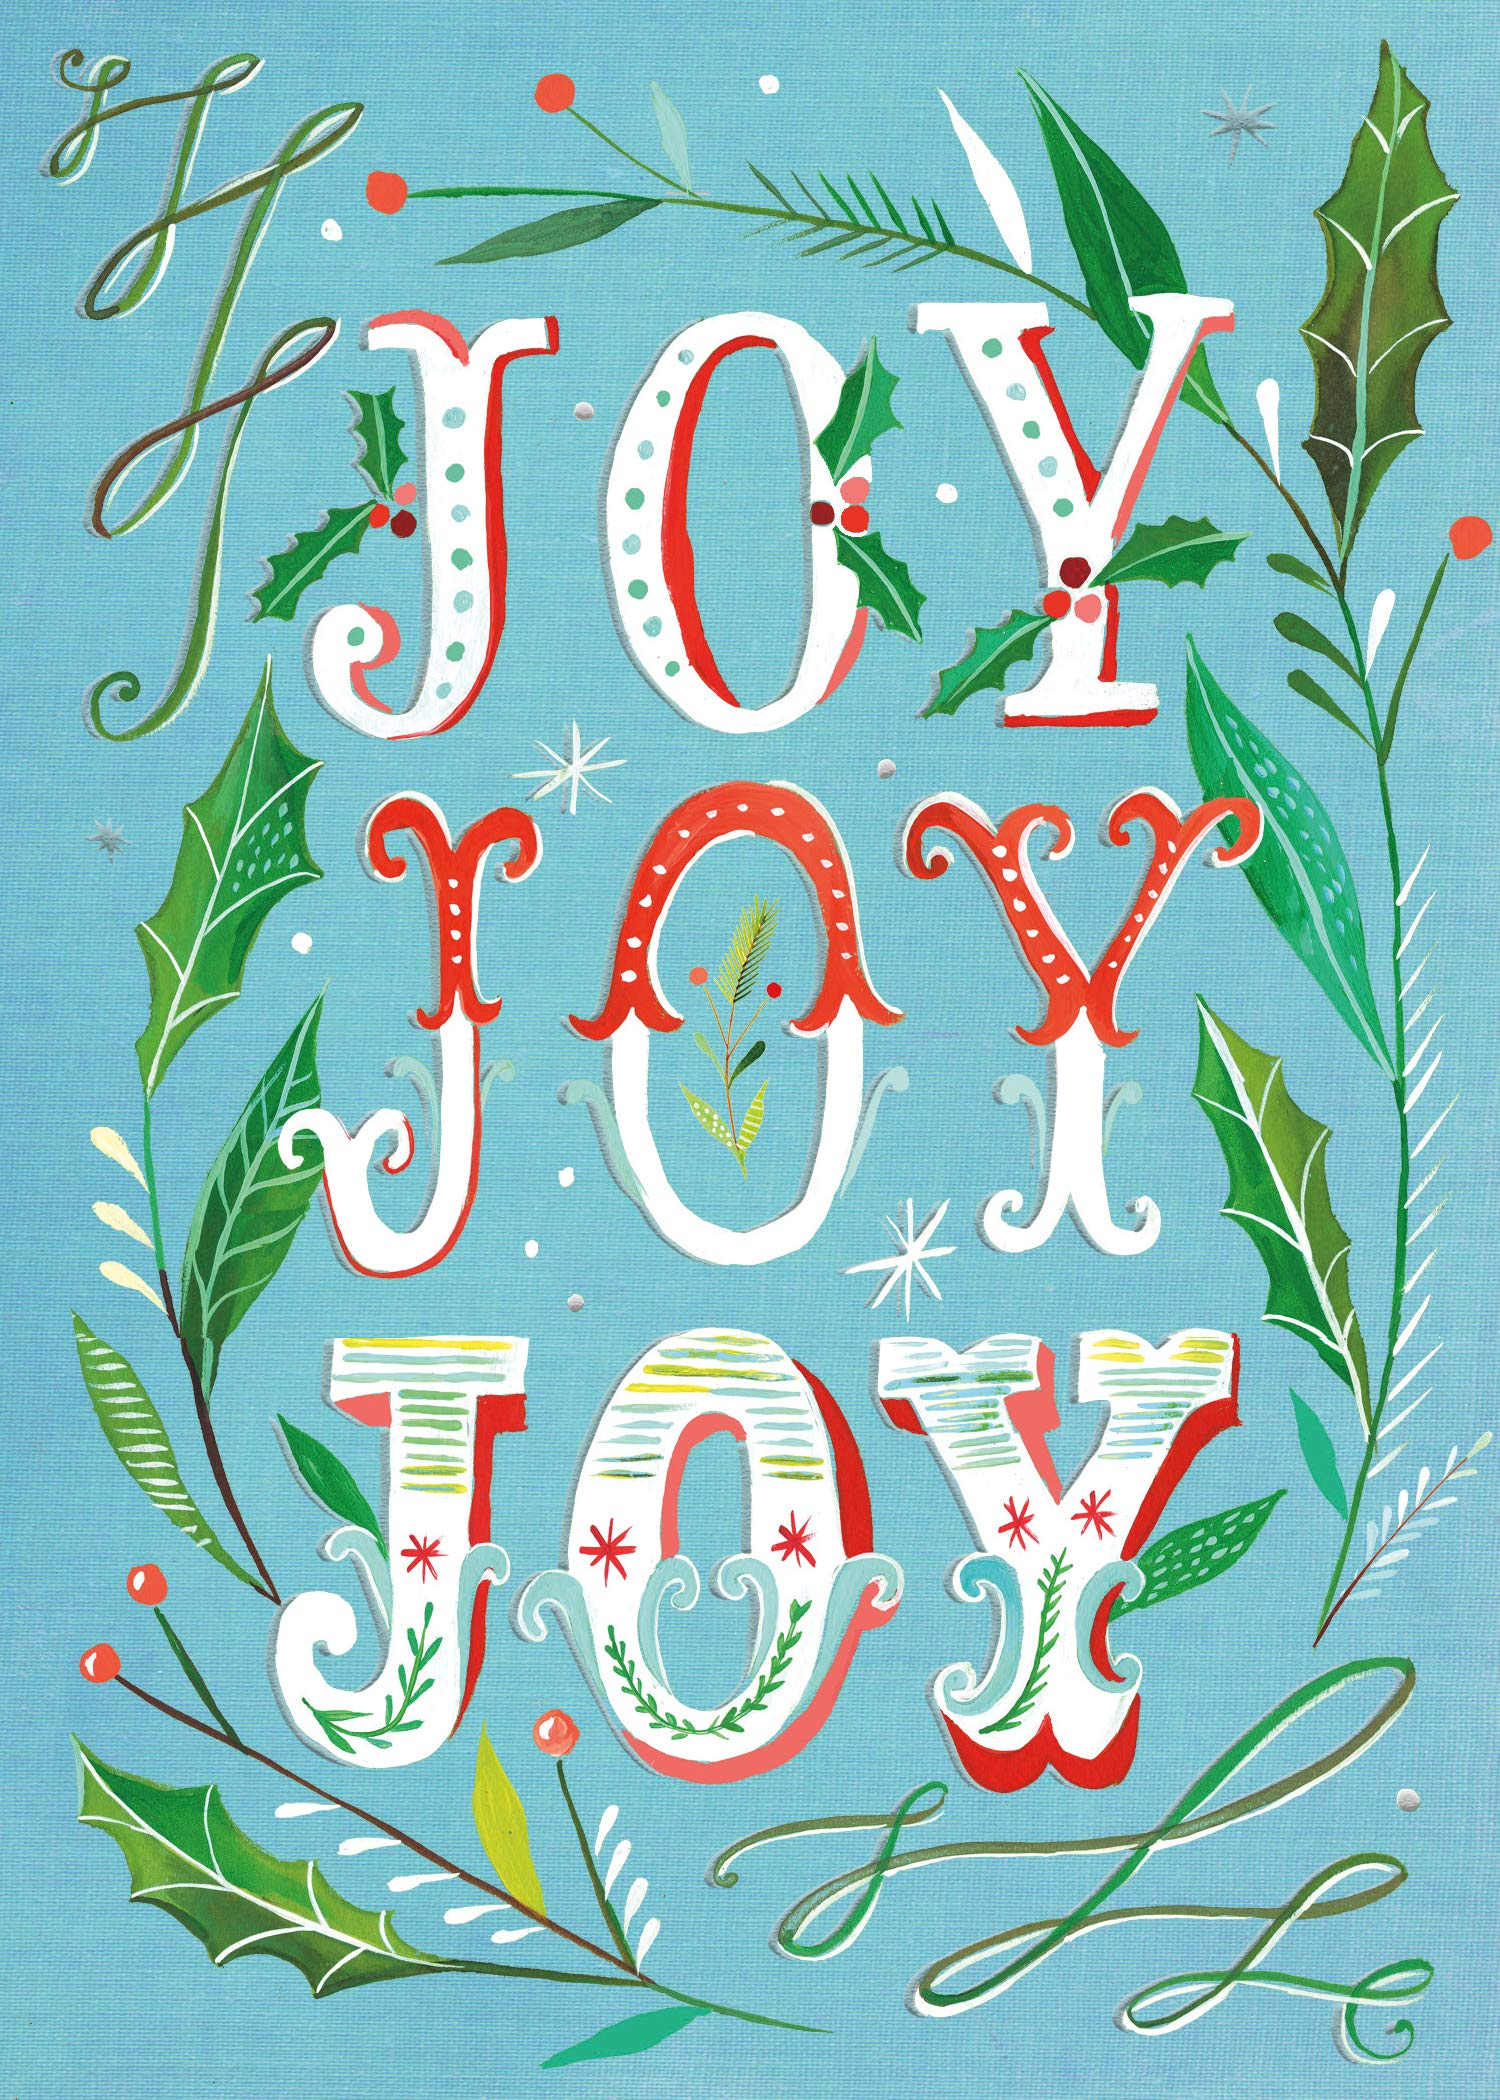 joy joy joy boxed holiday greeting cards with silver foil accents